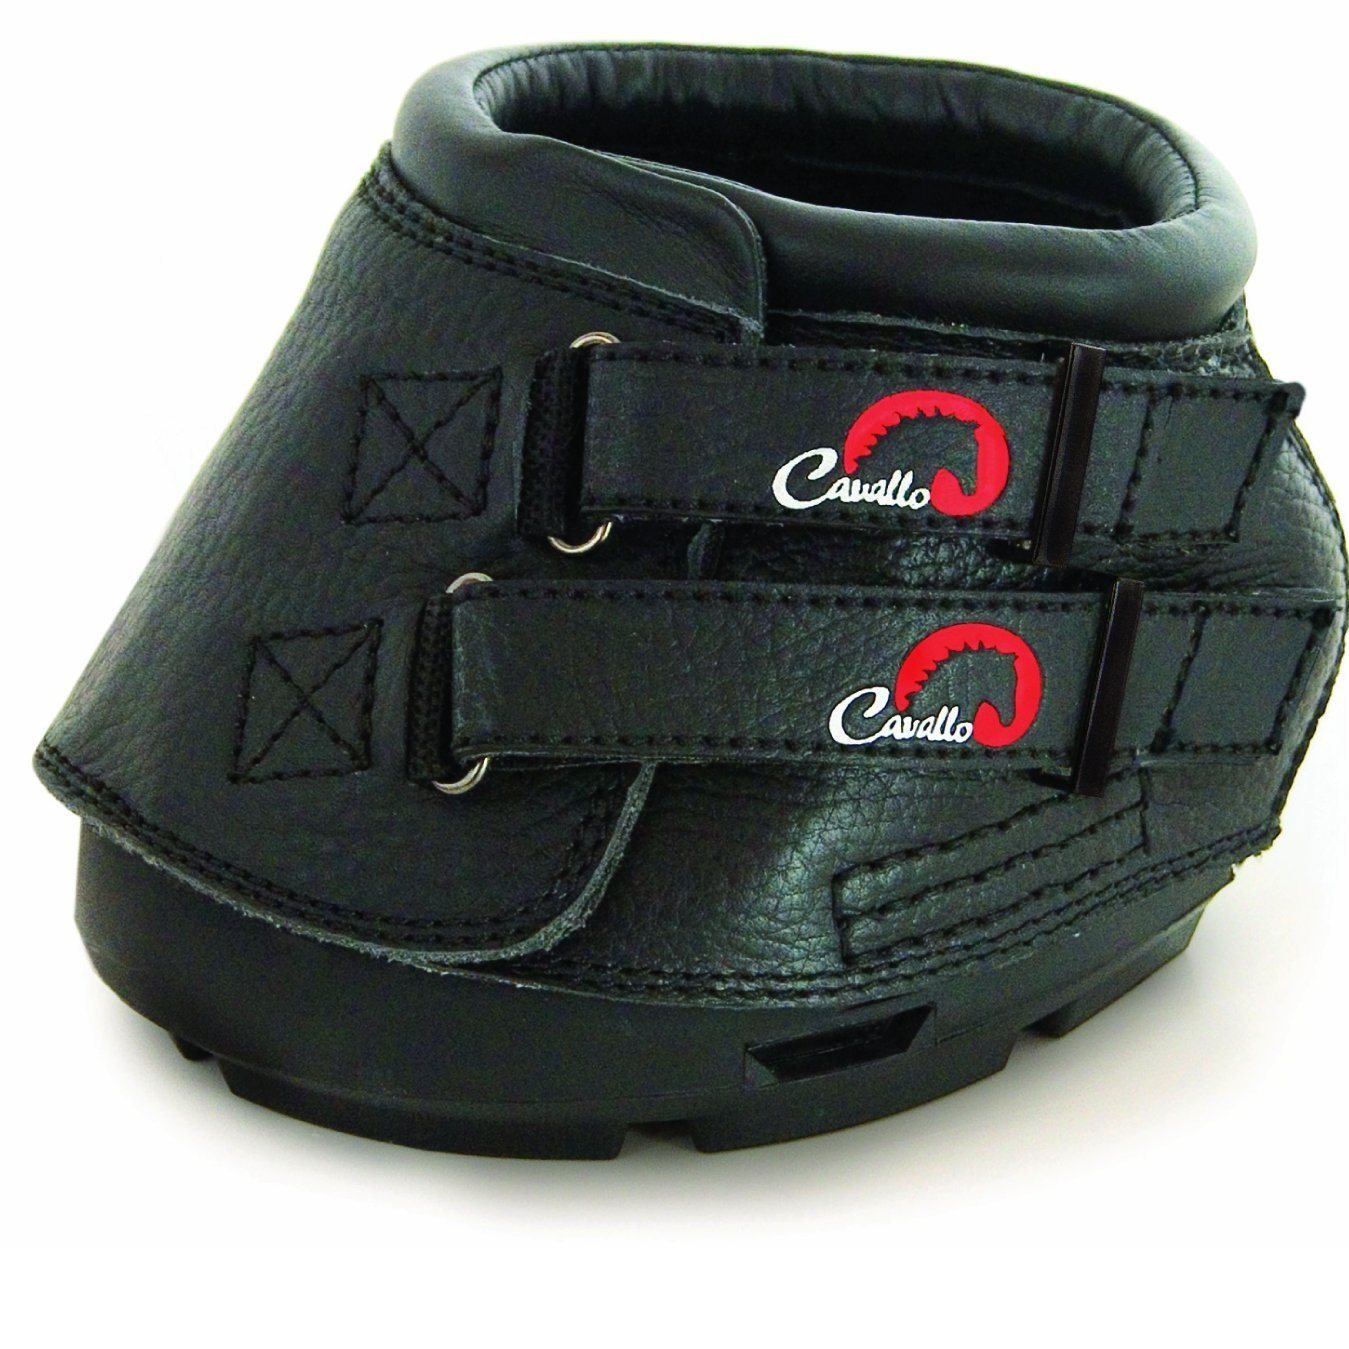 Cavallo Sole Horse Hoof Boot